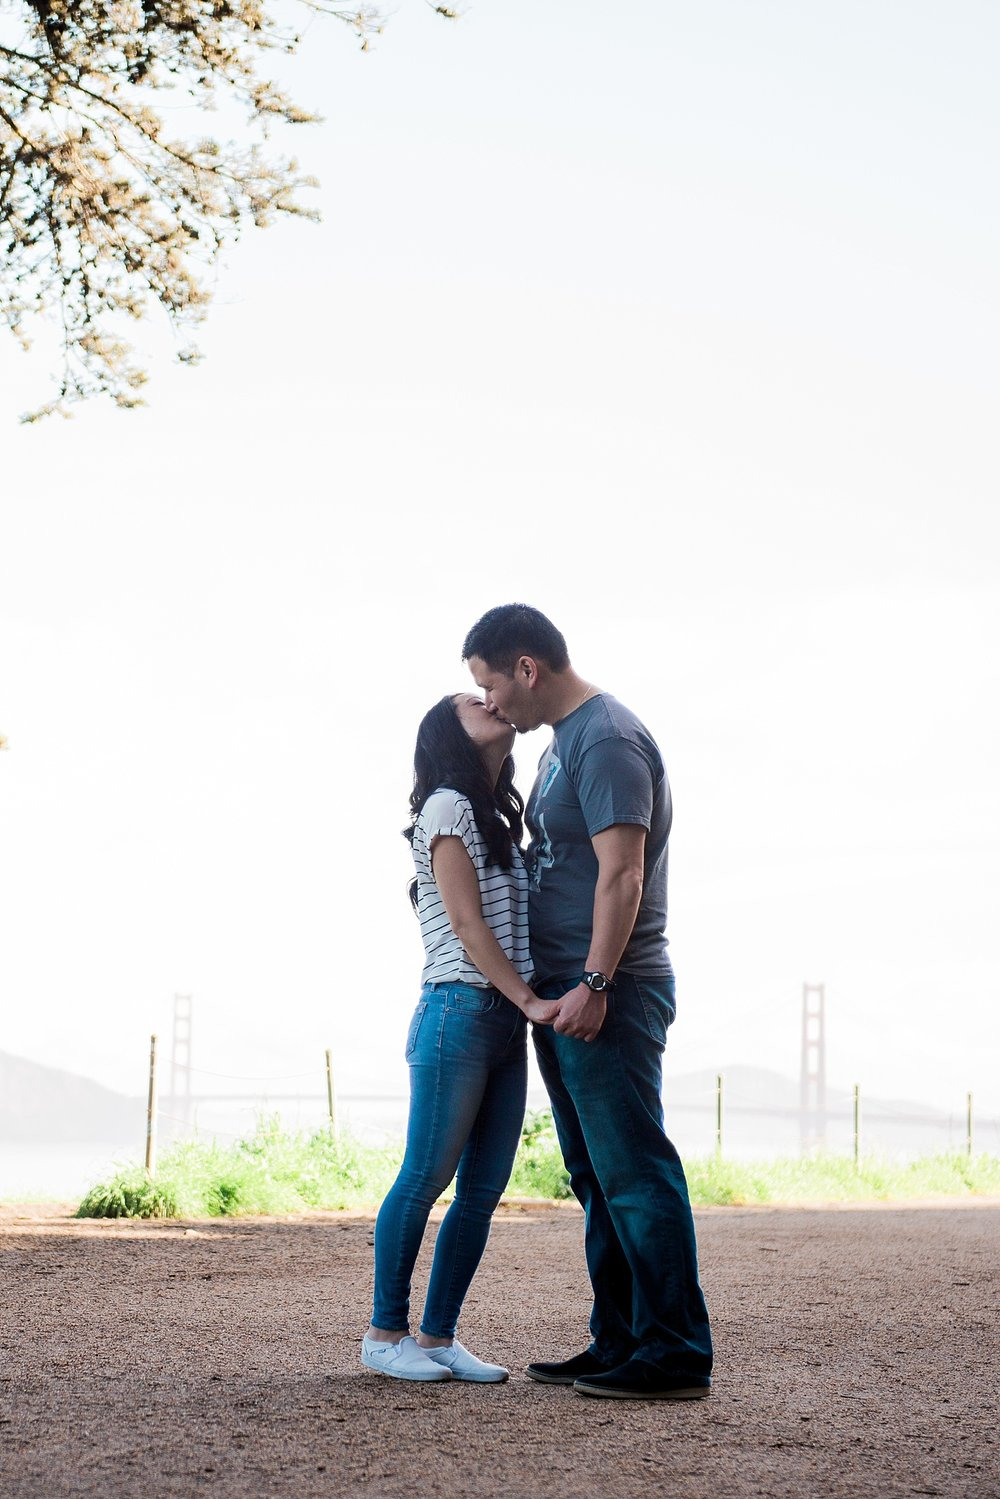 jennifer-jayn-photography-san-francisco-sutro-baths-engagement-session_0014.jpg